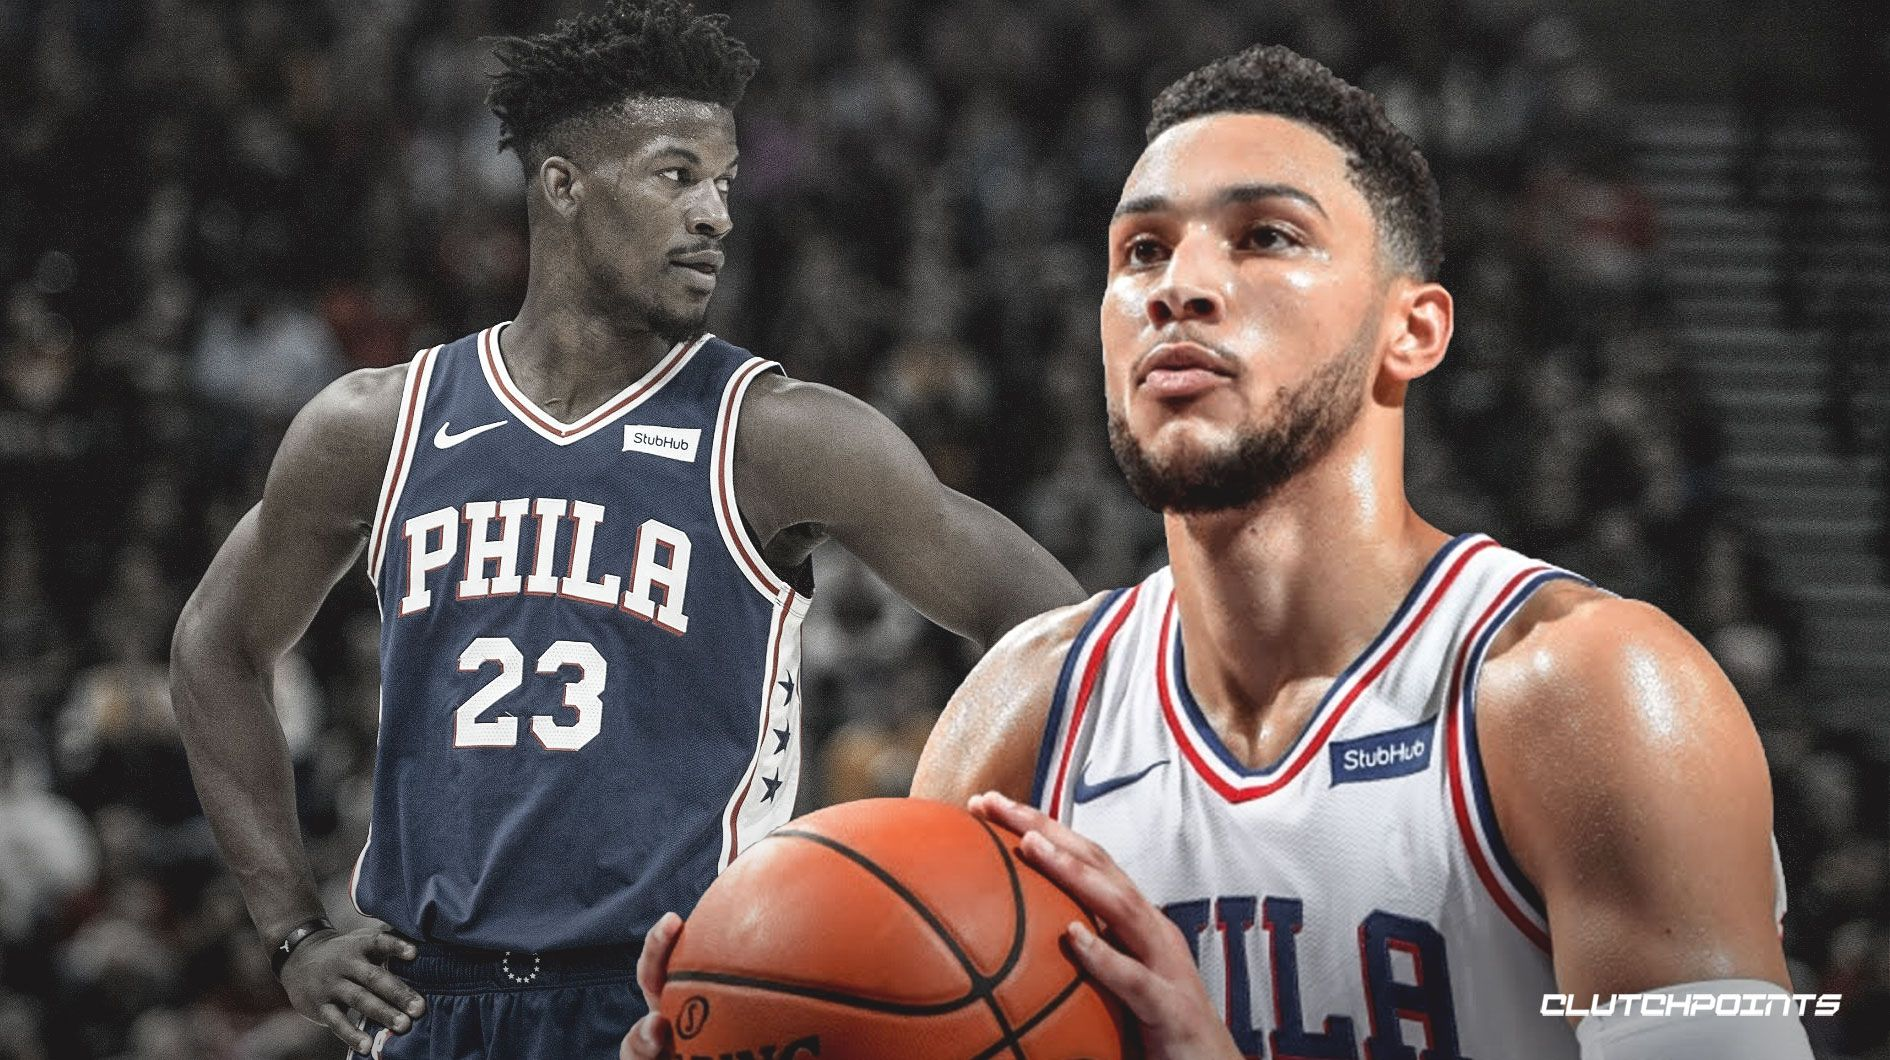 Simmons calls Sixers 'soft', Butler doesn't think so